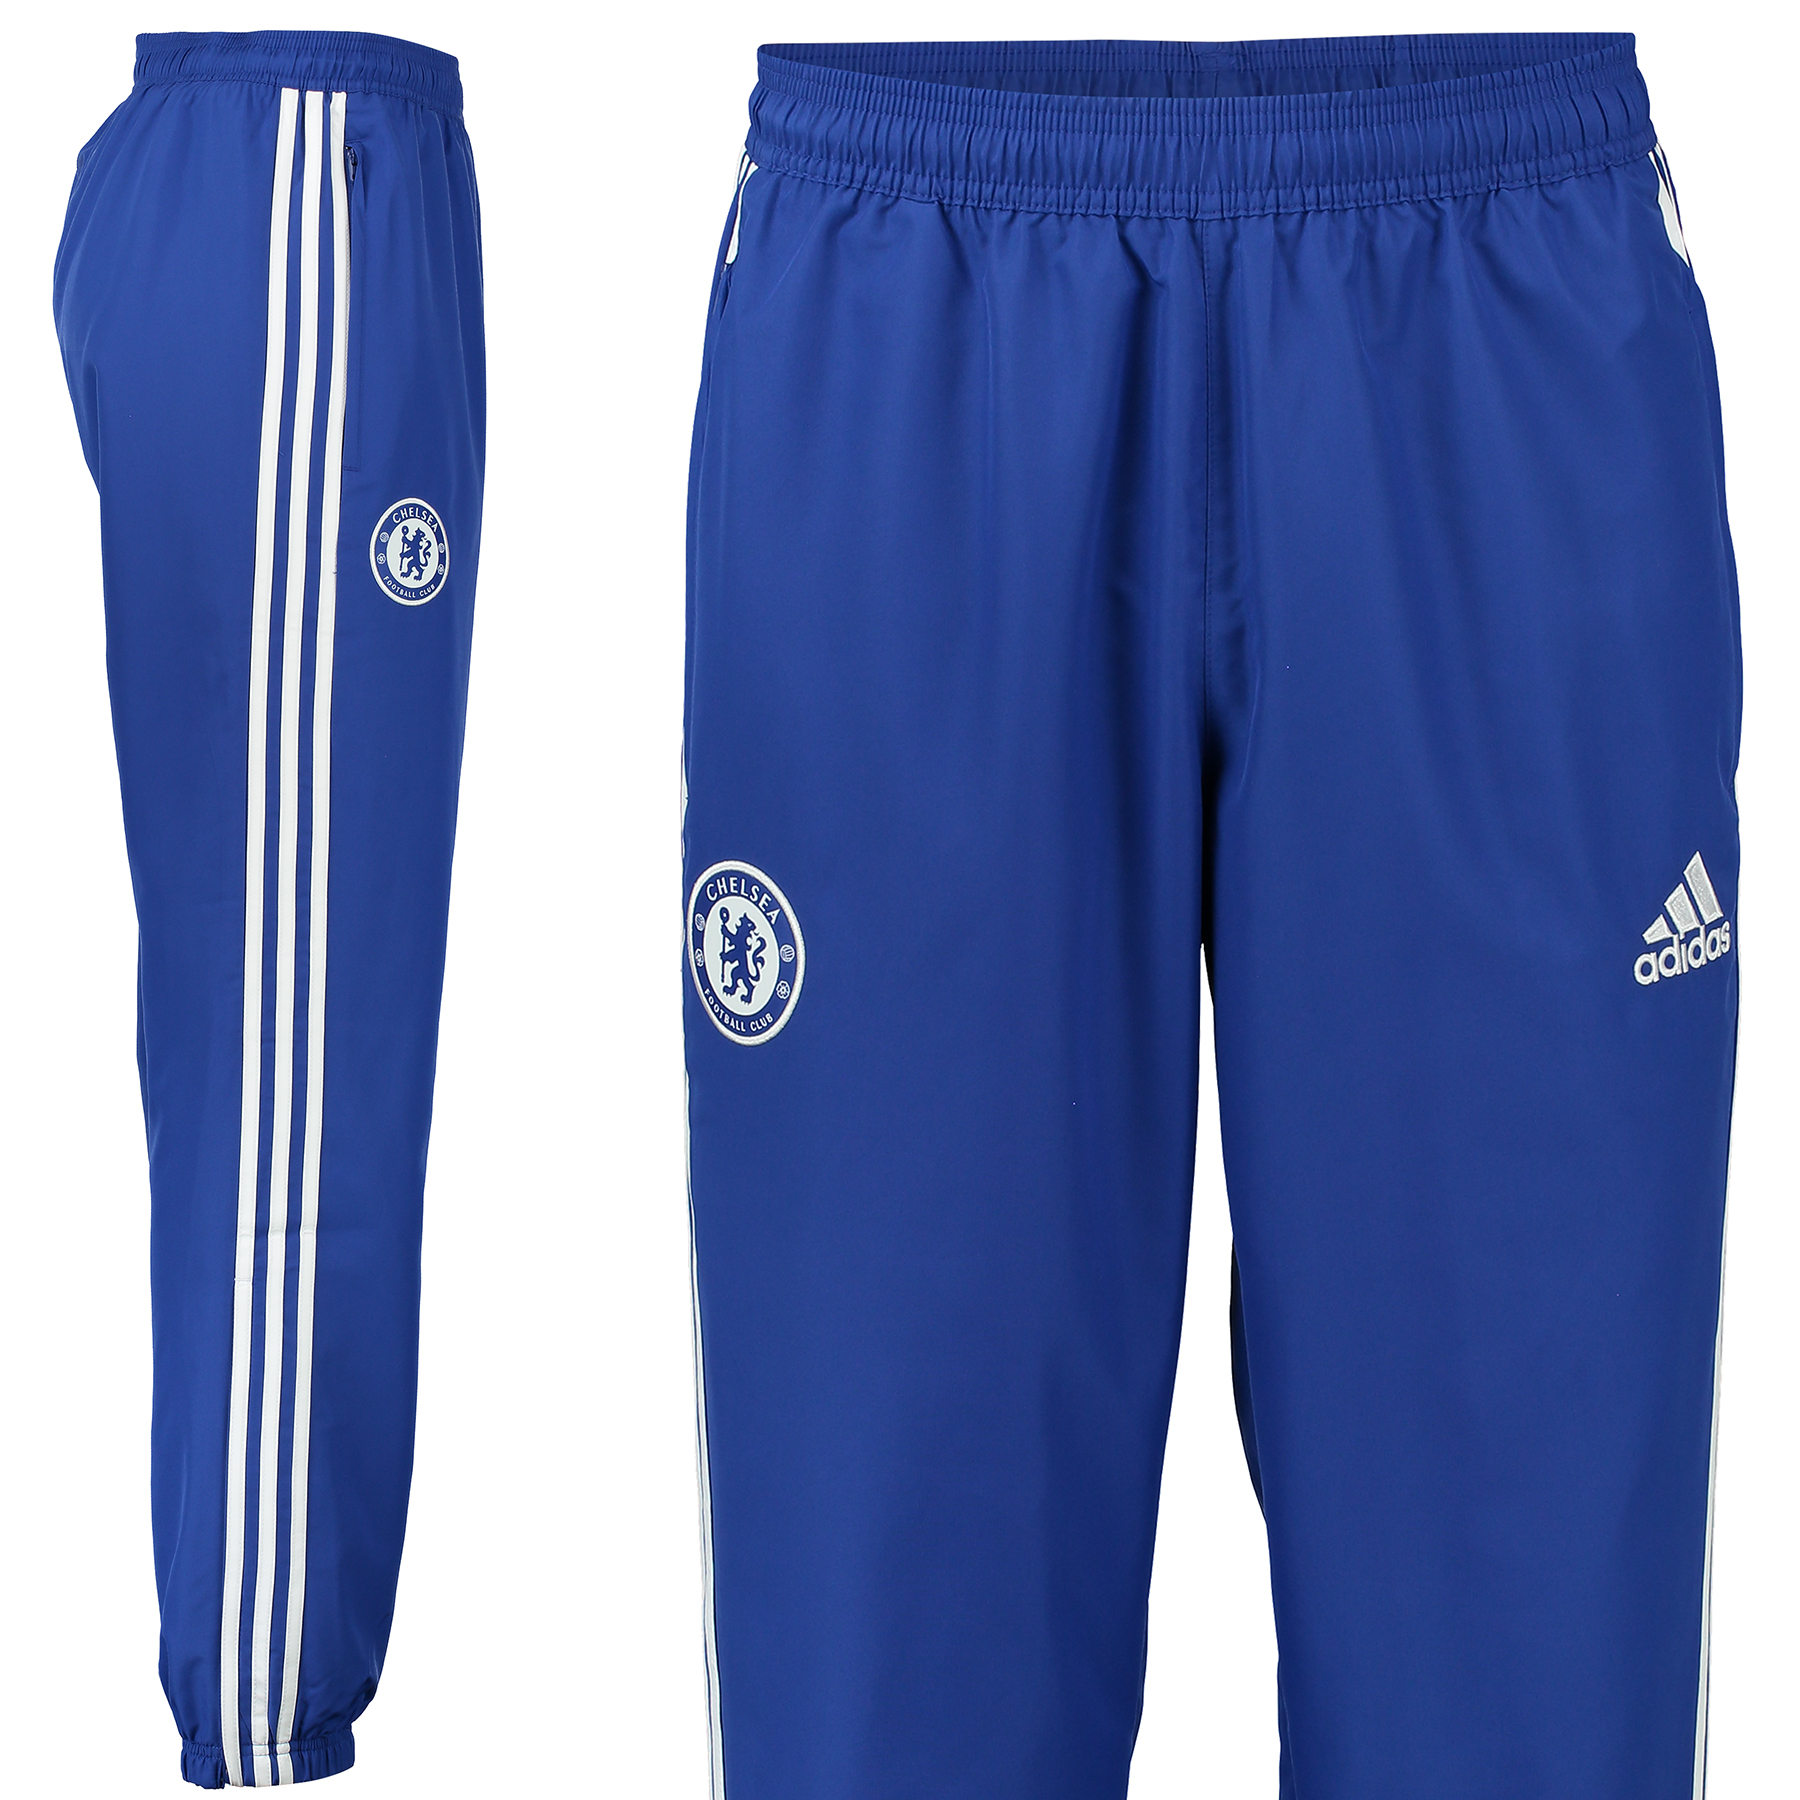 Chelsea Training Pants - Blue Fans can train in total comfort with the Chelsea Training Pants which feature CLIMACOOL® to provide heat and moisture management through ventilation. Benefits: CLIMACOOL® Provides heat and moisture management through ventilation Functional knitted fabric Tapered Fit Club crest: screen print 100% Polyester